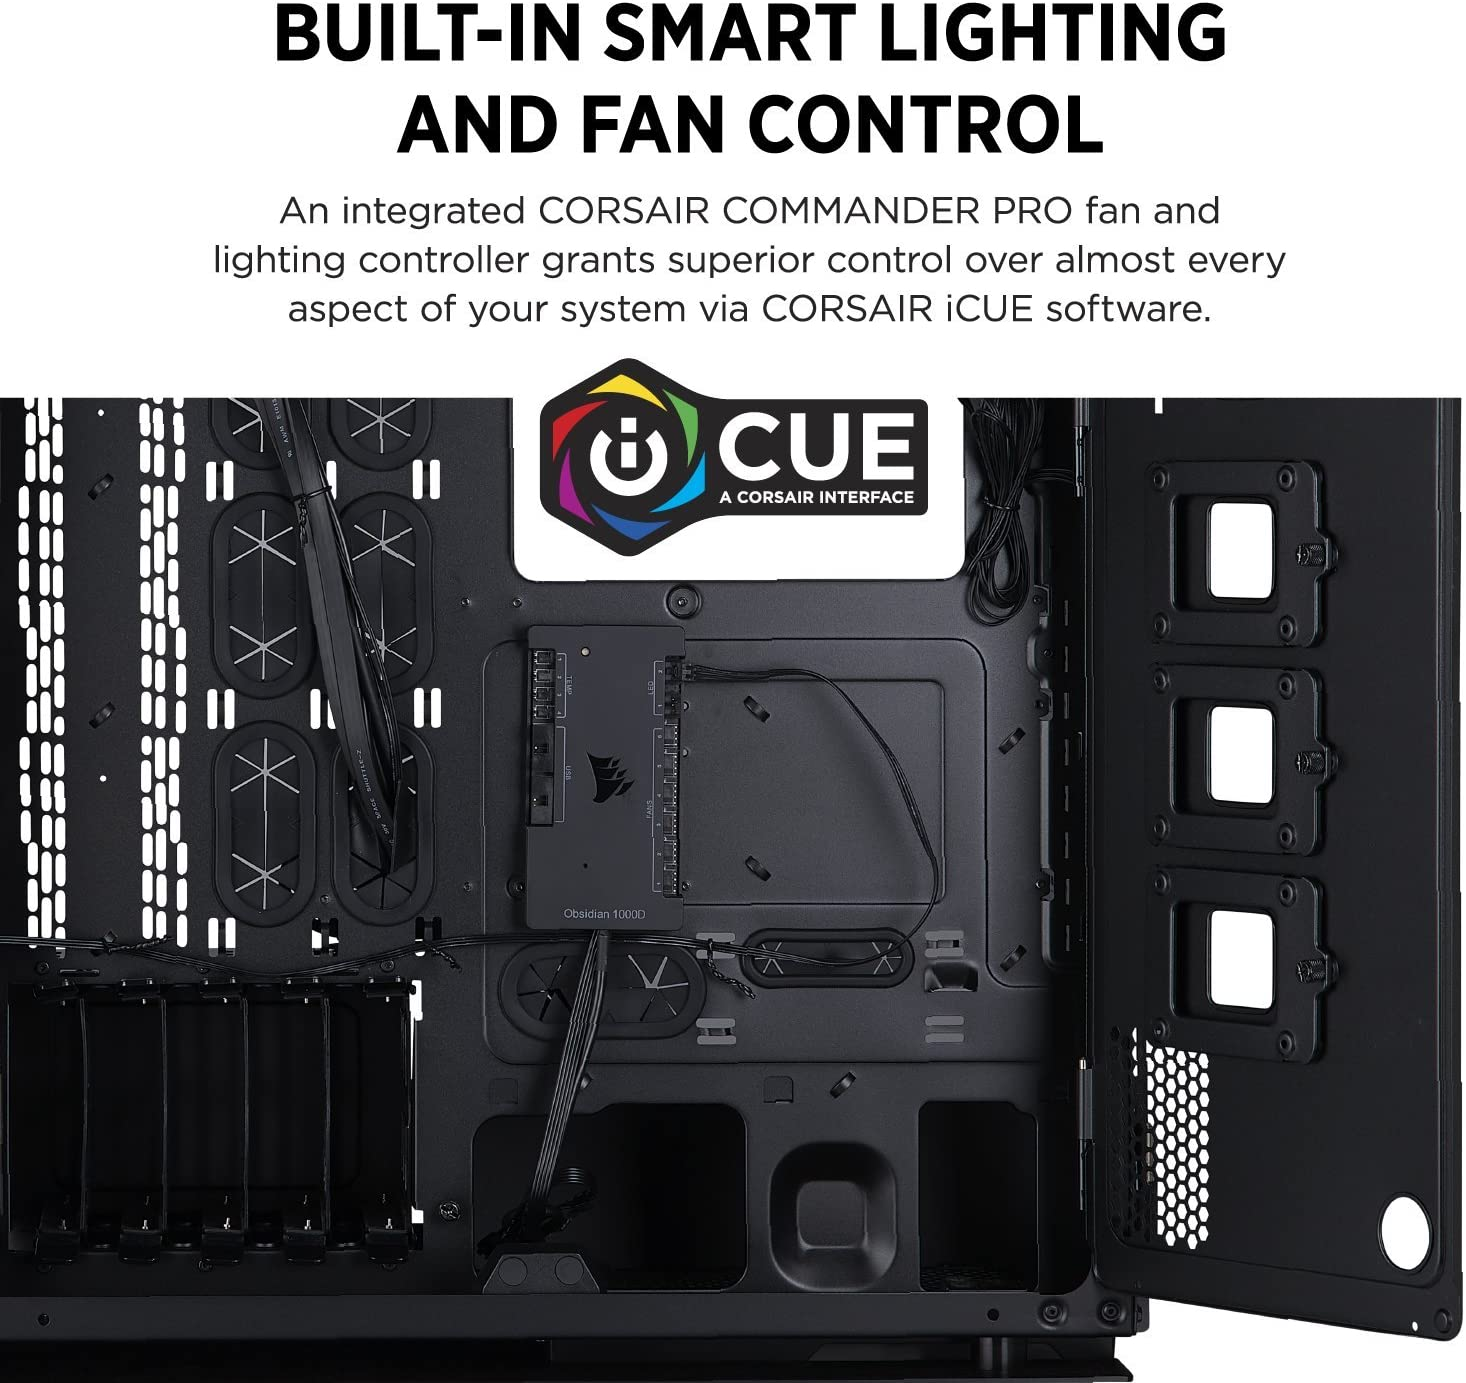 Smoked Tempered Glass CORSAIR OBSIDIAN 1000D Super-Tower Case Integrated COMMANDER PRO fan and lighting controller CC-9011148-WW Aluminum Trim